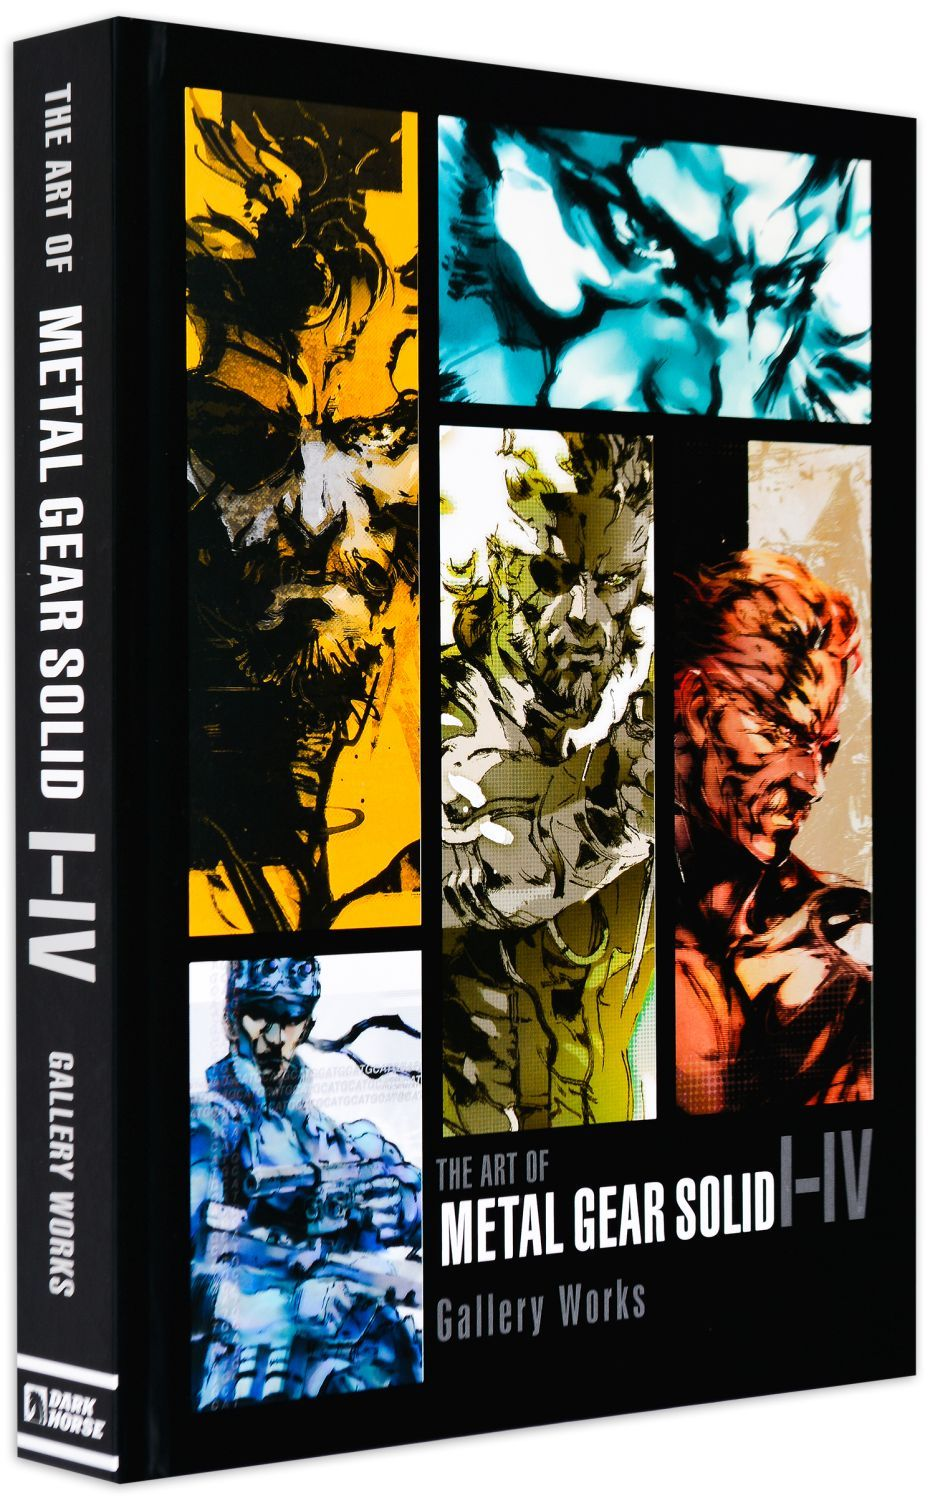 The Art of Metal Gear Solid I-IV (Collectable slipcase Hardcover) - 6